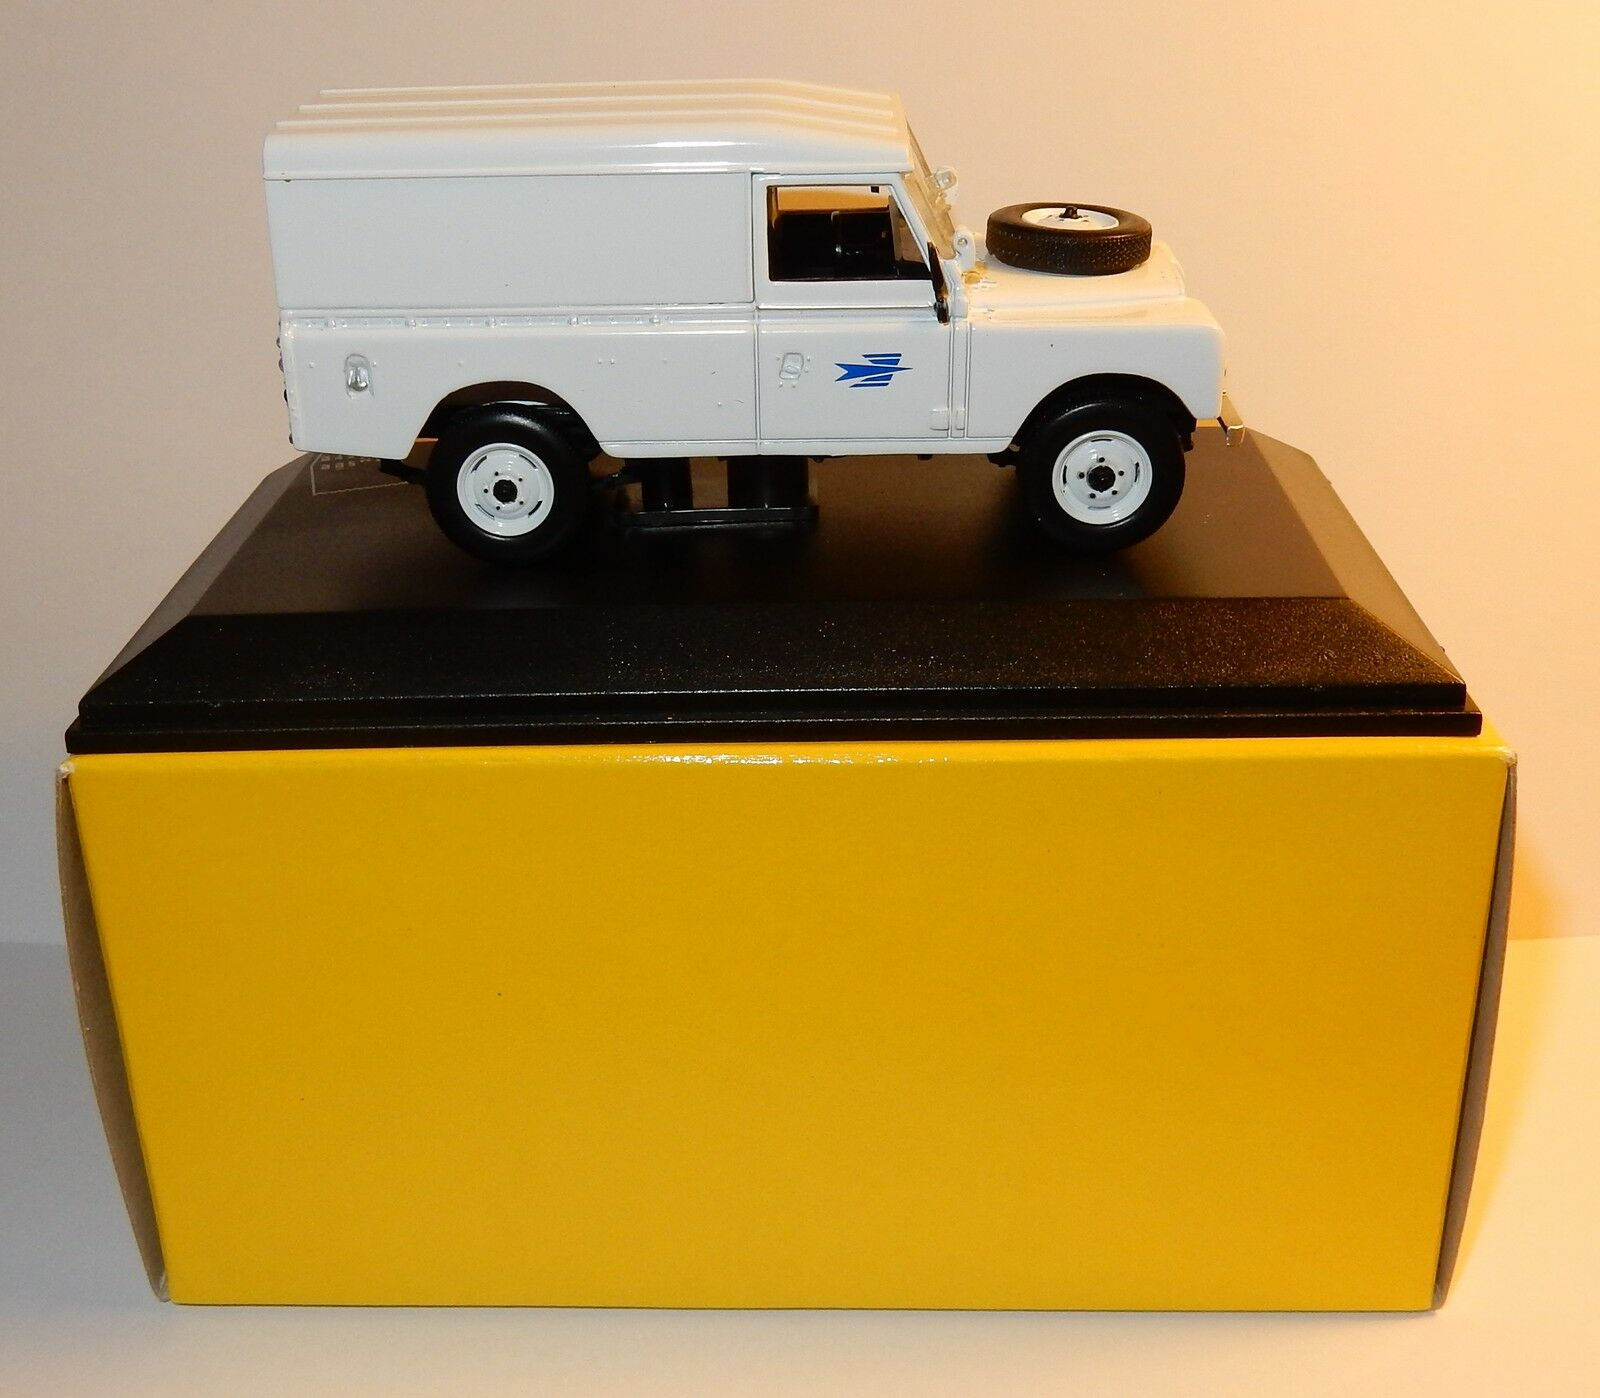 RARE UH UNIVERSAL HOBBIES LAND ROVER III 1978 1978 1978 POSTES POSTE PTT 4X4 1 43 LUXE BOX 6983e1